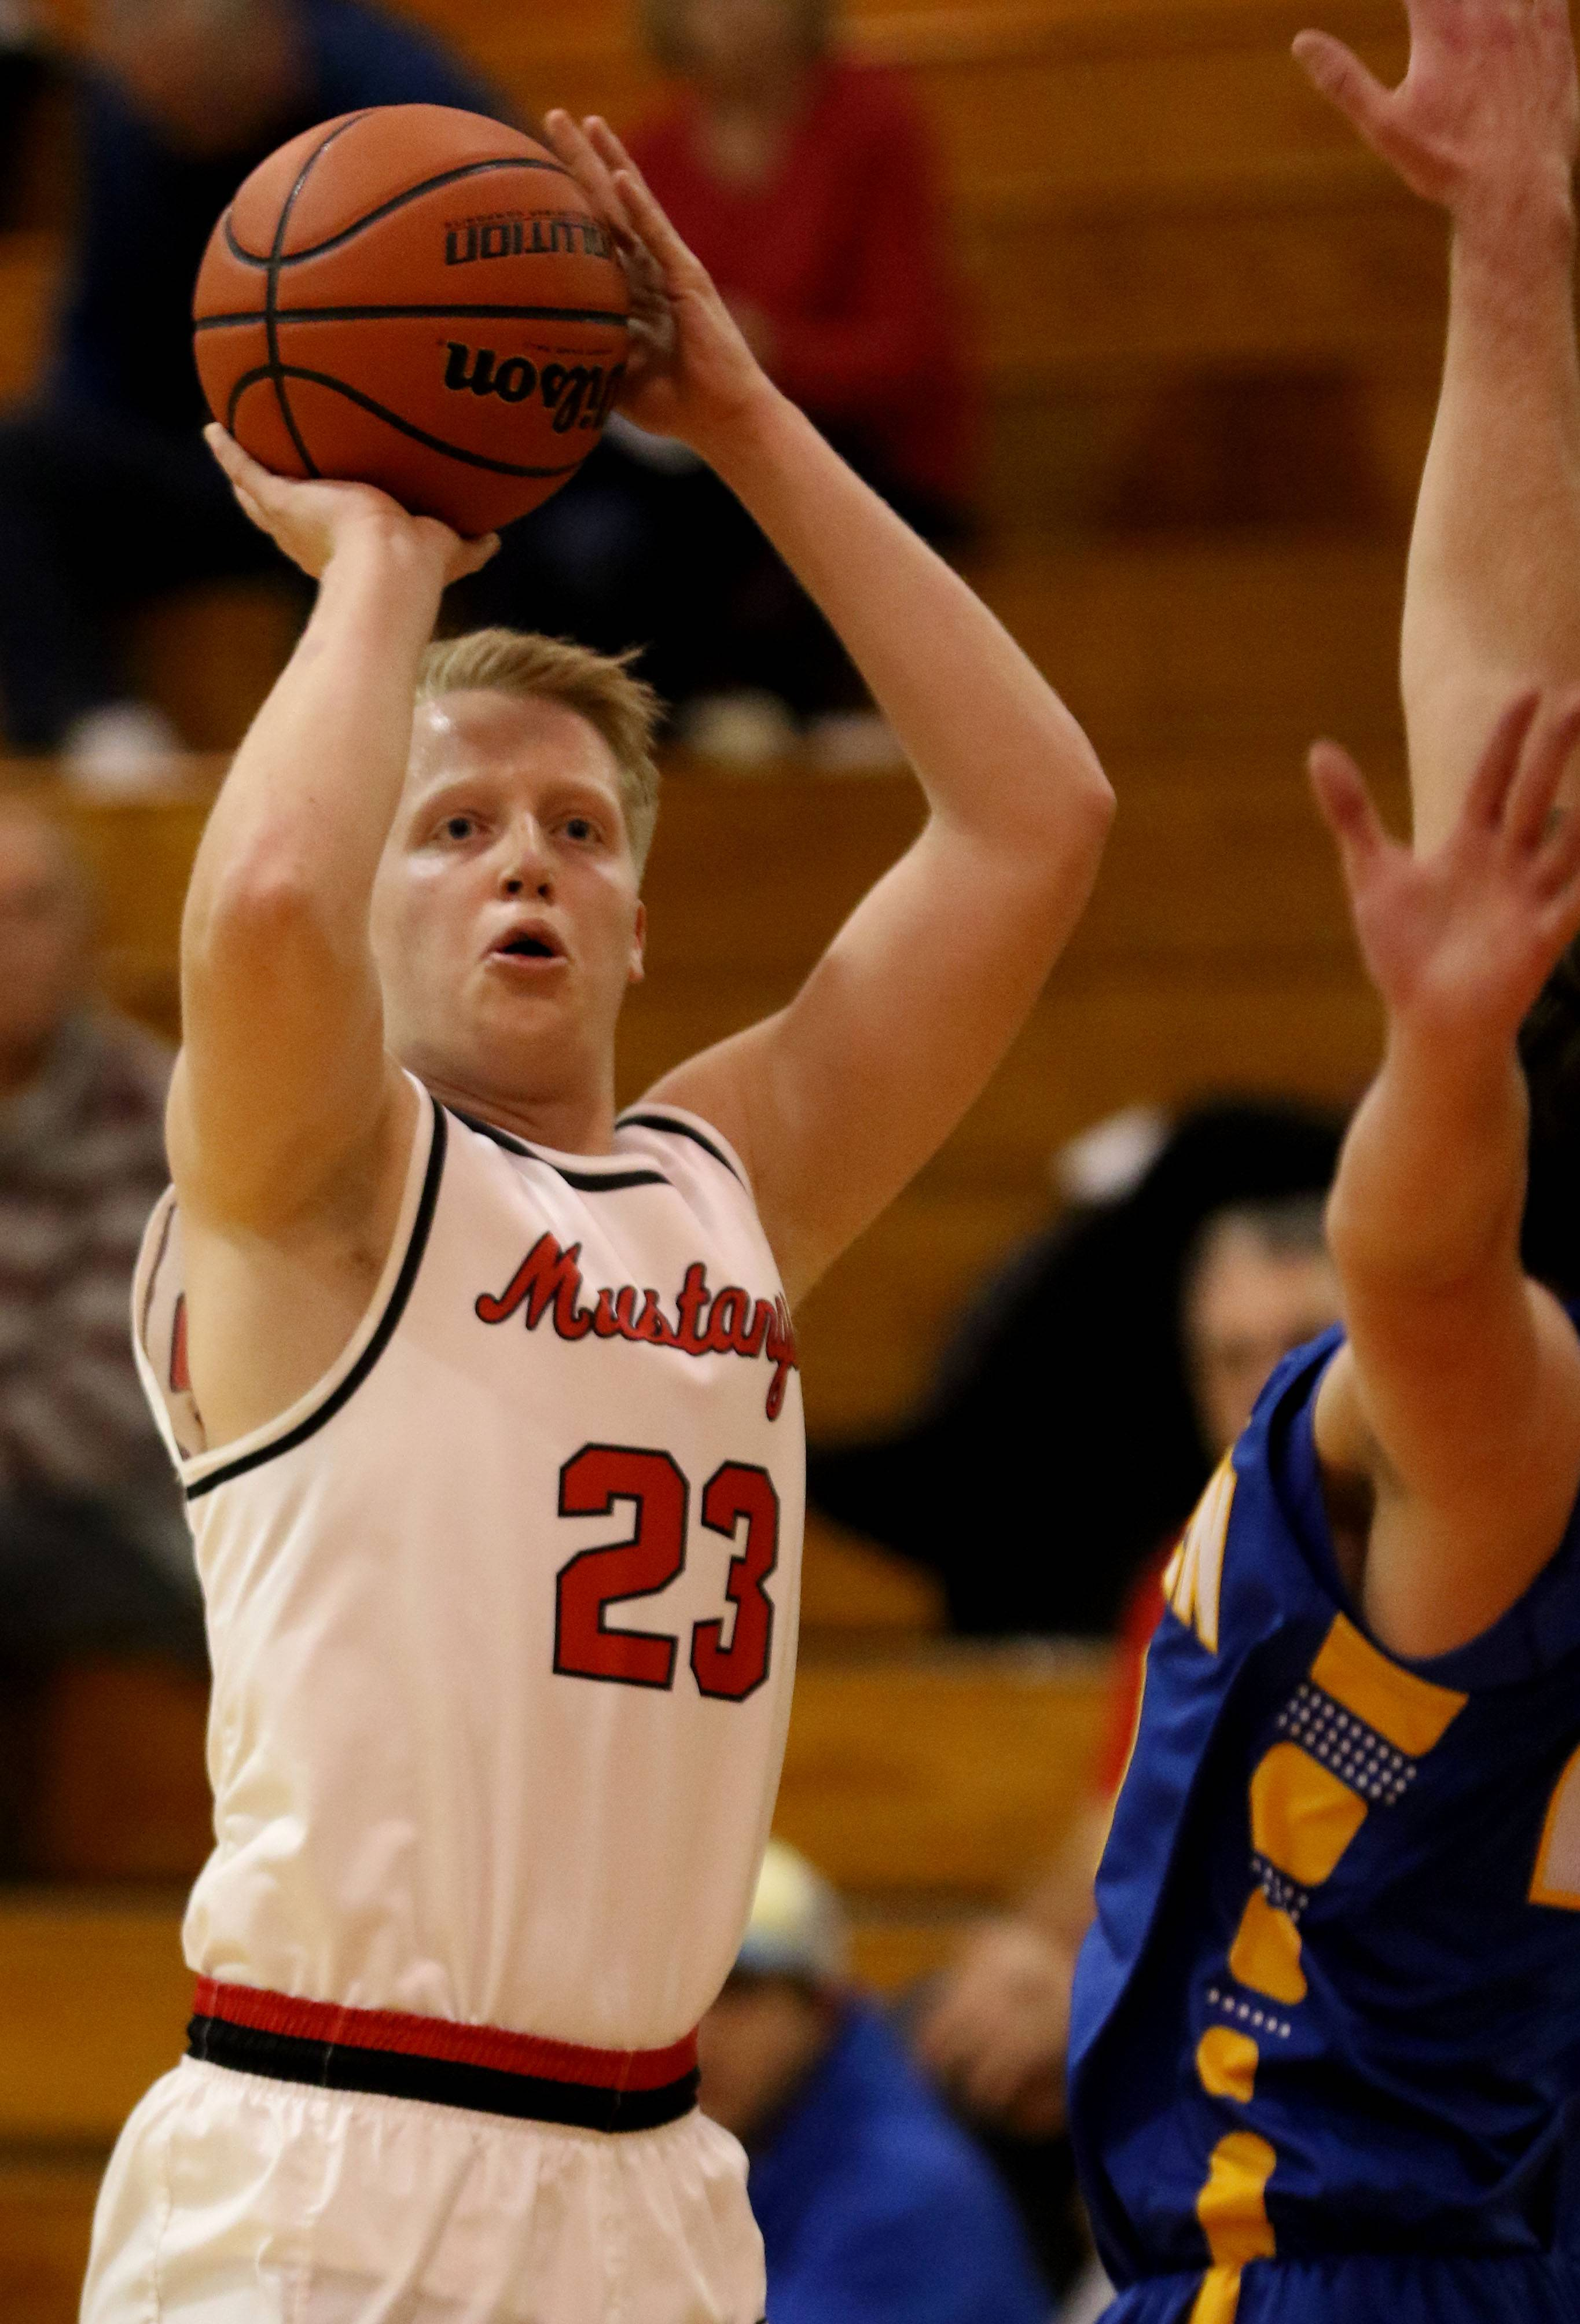 Mundelein's Thomas Marcotte takes a jumper against Warren during tournament play Tuesday at Mundelein.